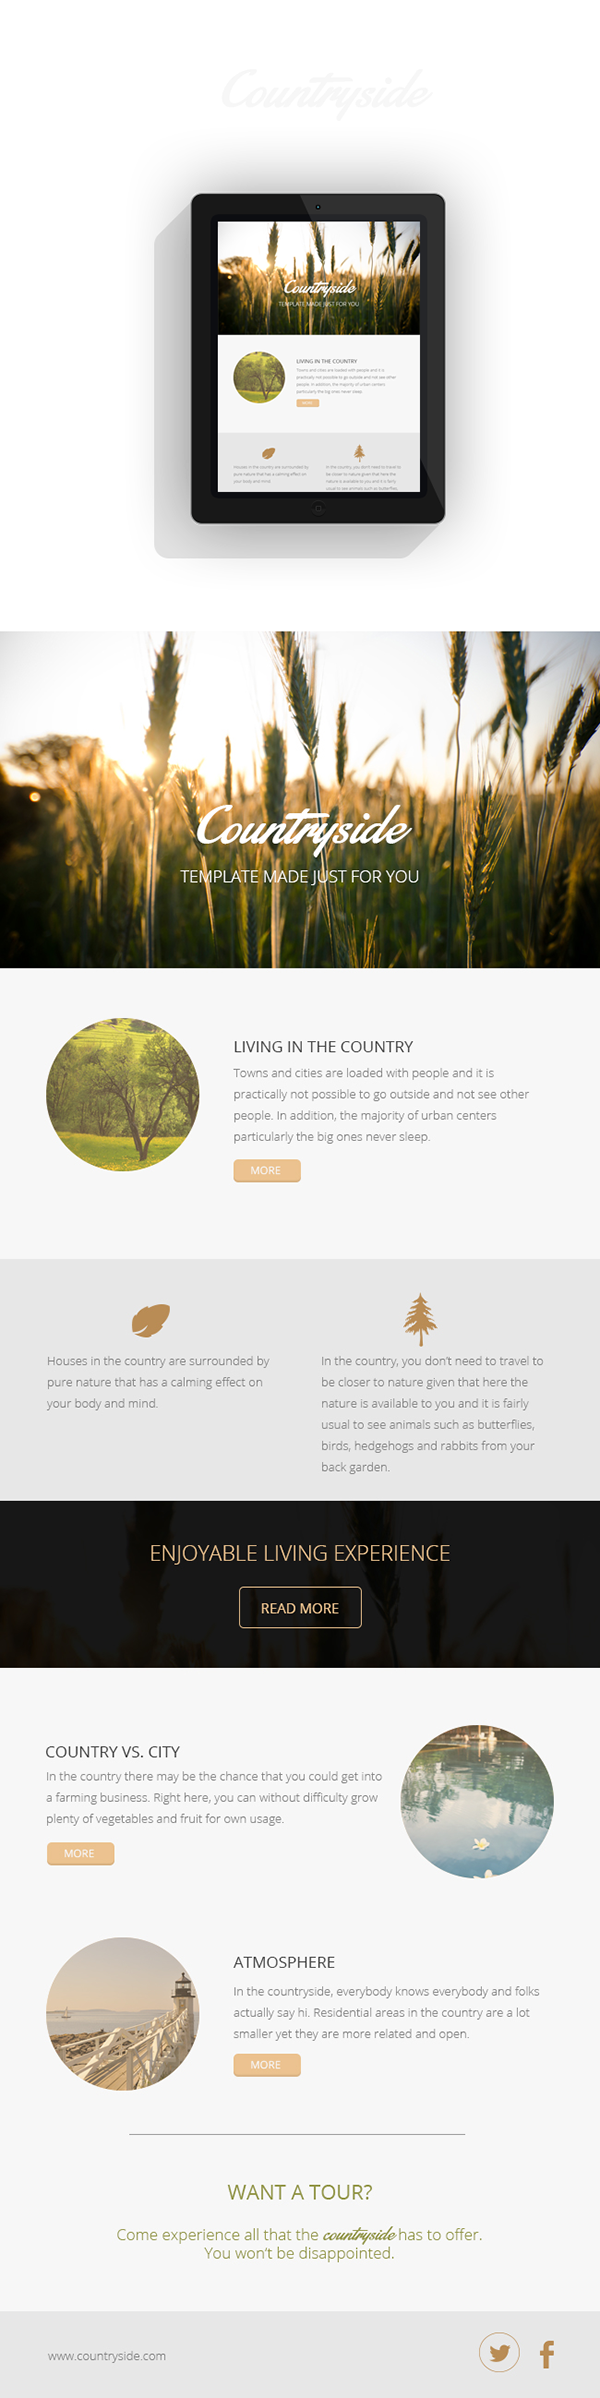 Free Countryside Email Template Psd On Behance